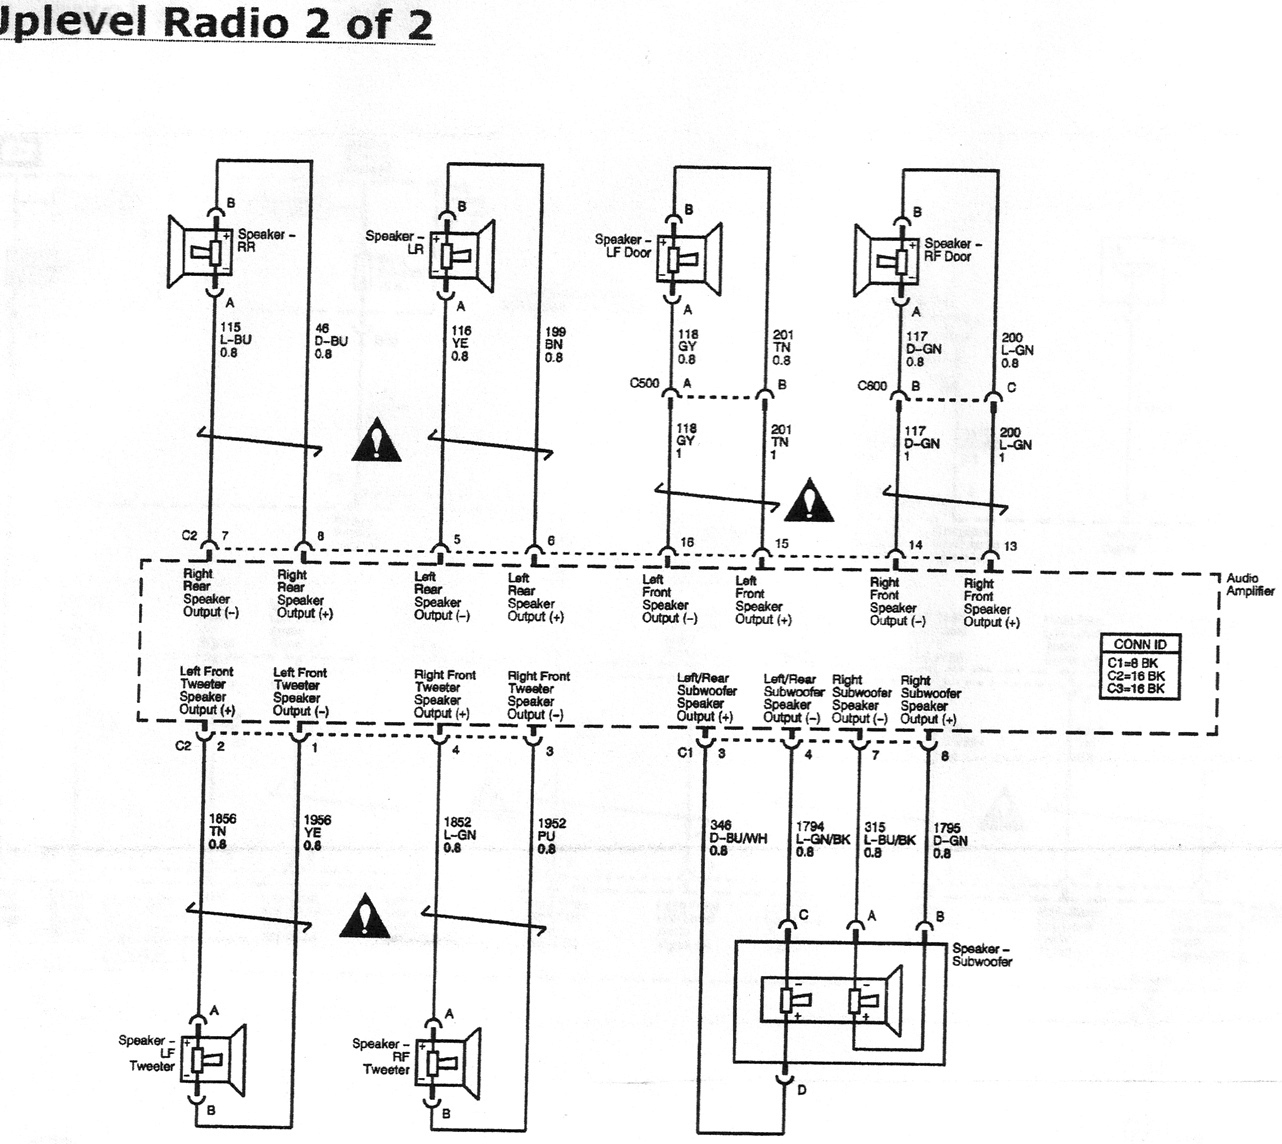 29802 monsoon amp speaker replacement monsoon_wiring_diagram_page_2 monsoon amp and speaker replacement saturn sky forums saturn firebird monsoon wiring diagram at virtualis.co